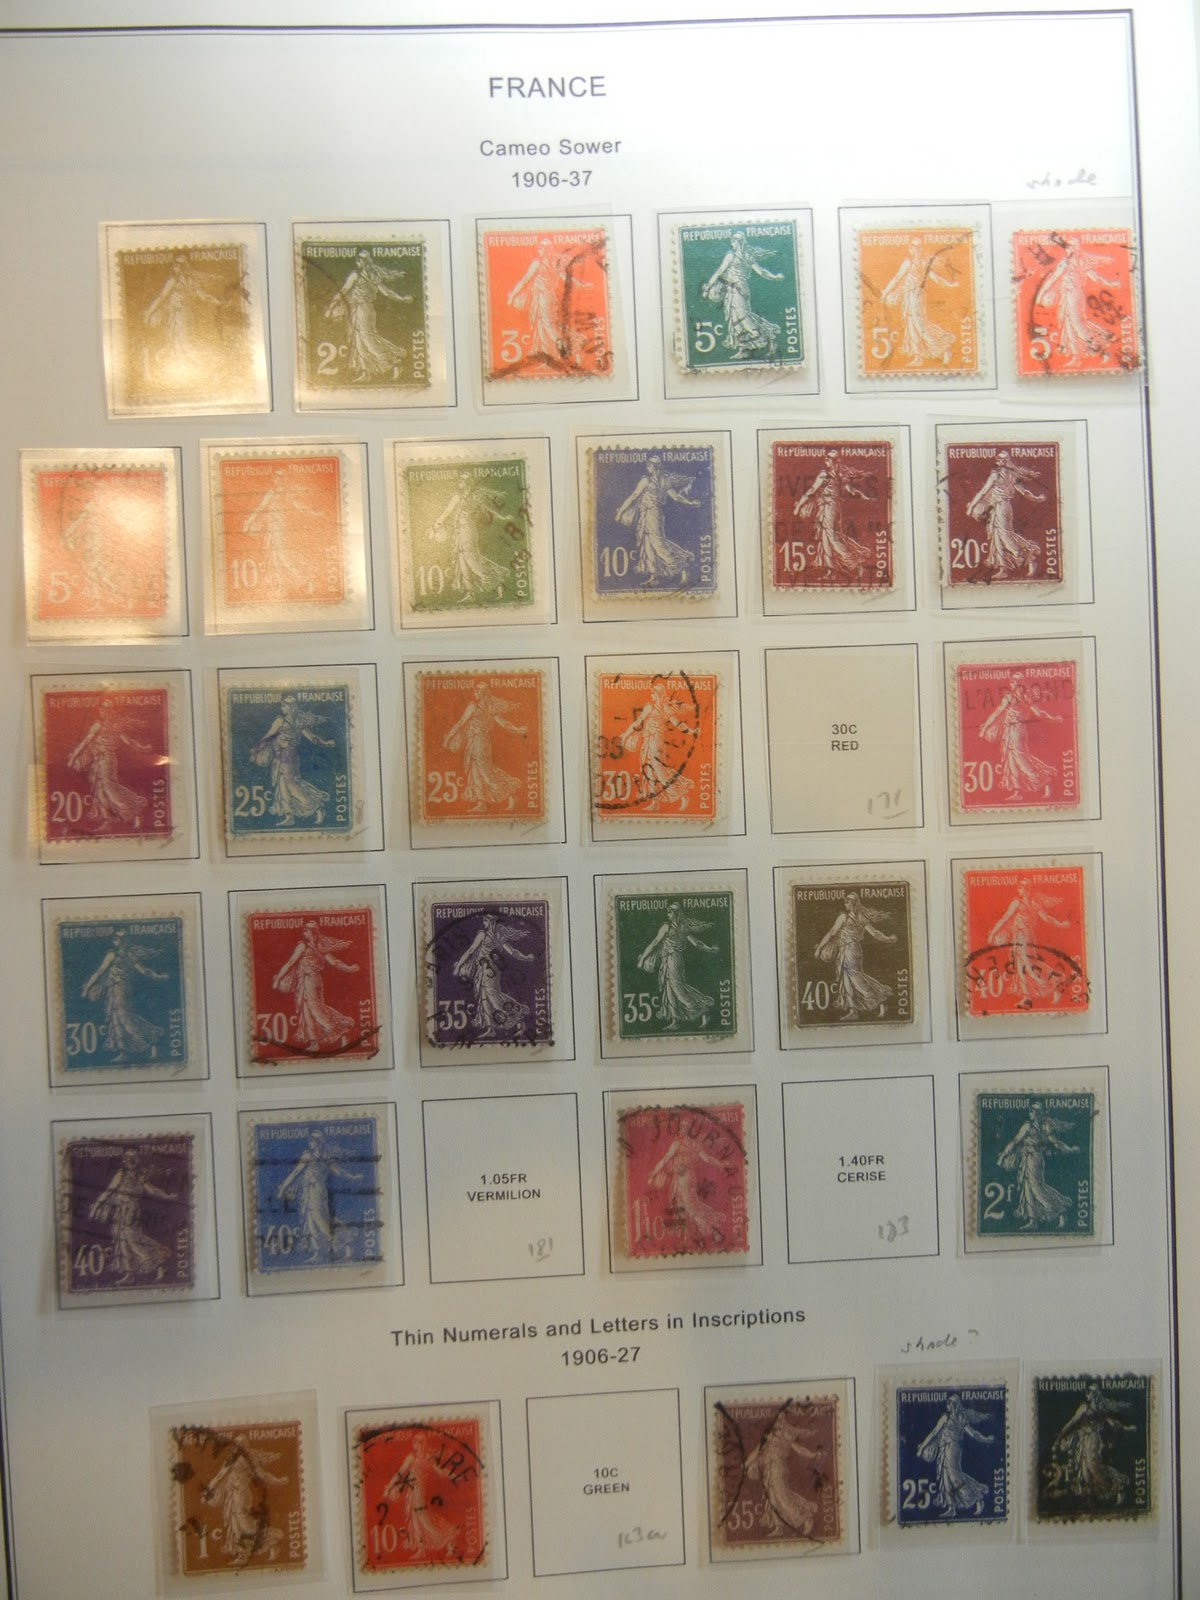 Red sower stamp photo